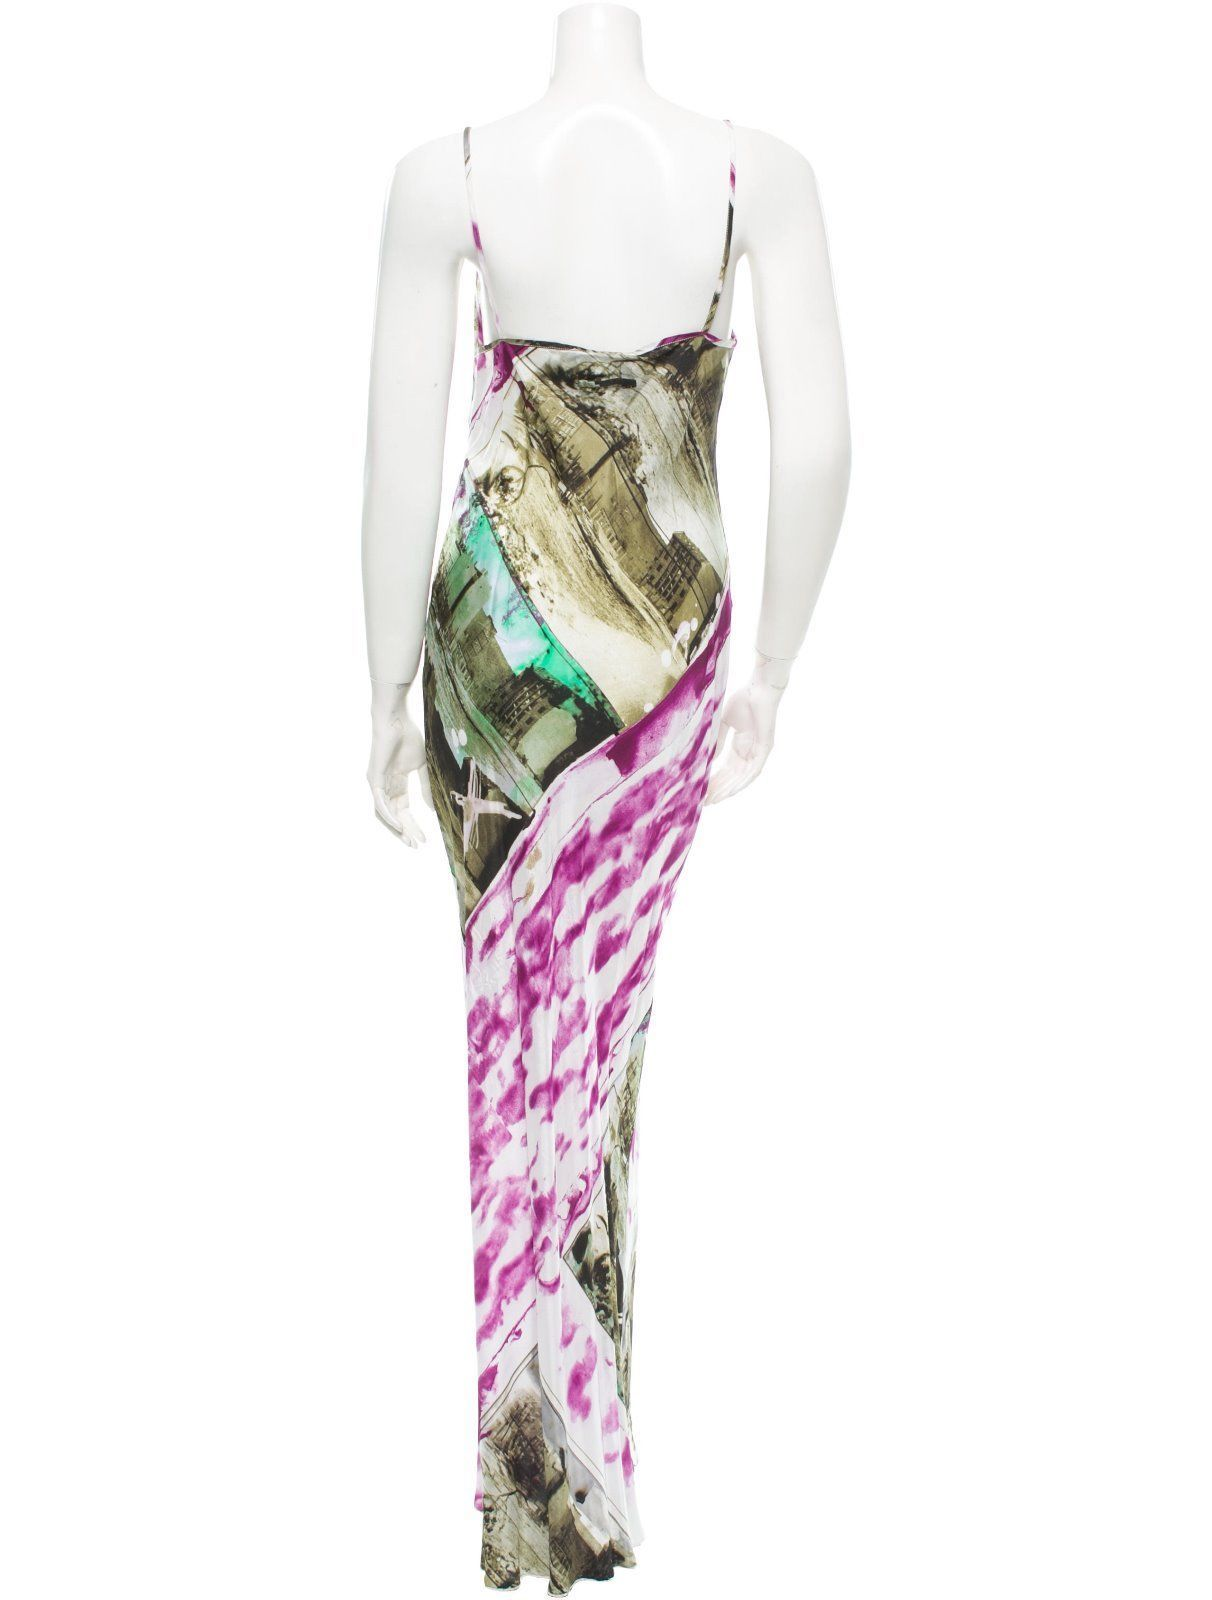 BEAUTIFUL NEW MAXI DRESS BY JEAN PAUL GAULTIER